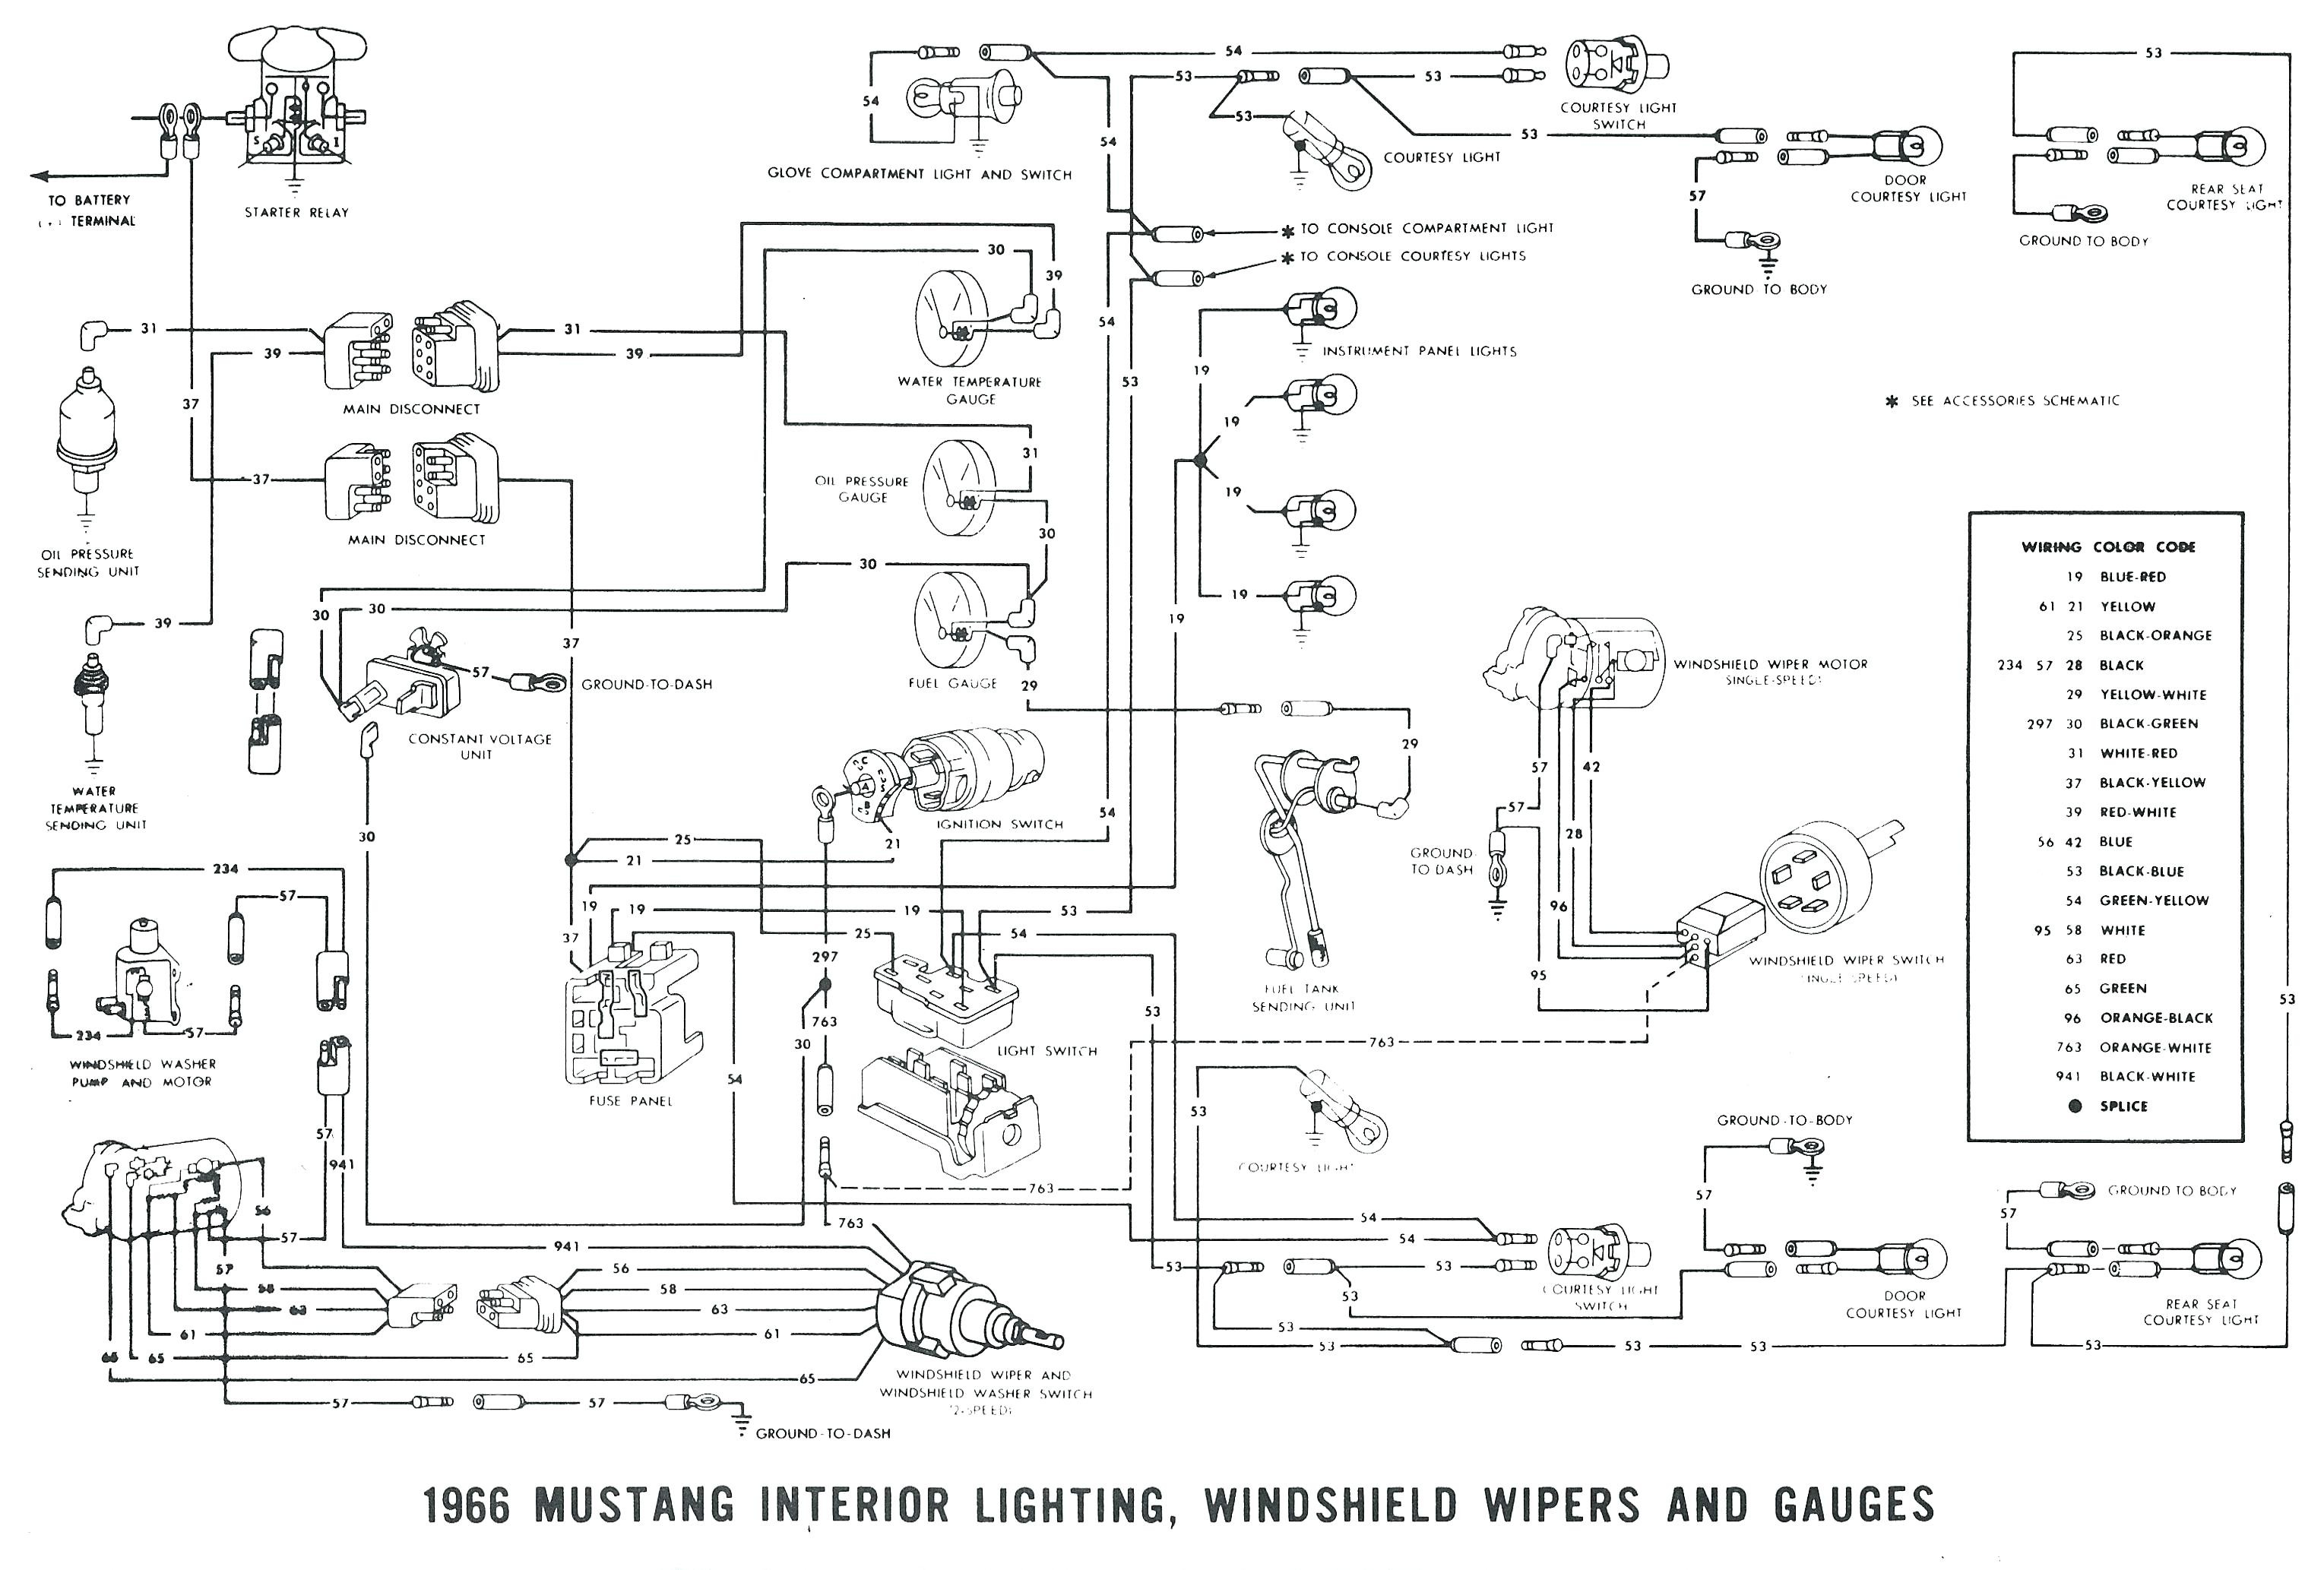 1990 mustang wiring diagram wiring diagram for nutone doorbell ford 1990 mustang wiring diagram 1990 ford mustang alternator wiring diagram engine diagrams 90 radio of 1990 publicscrutiny Images